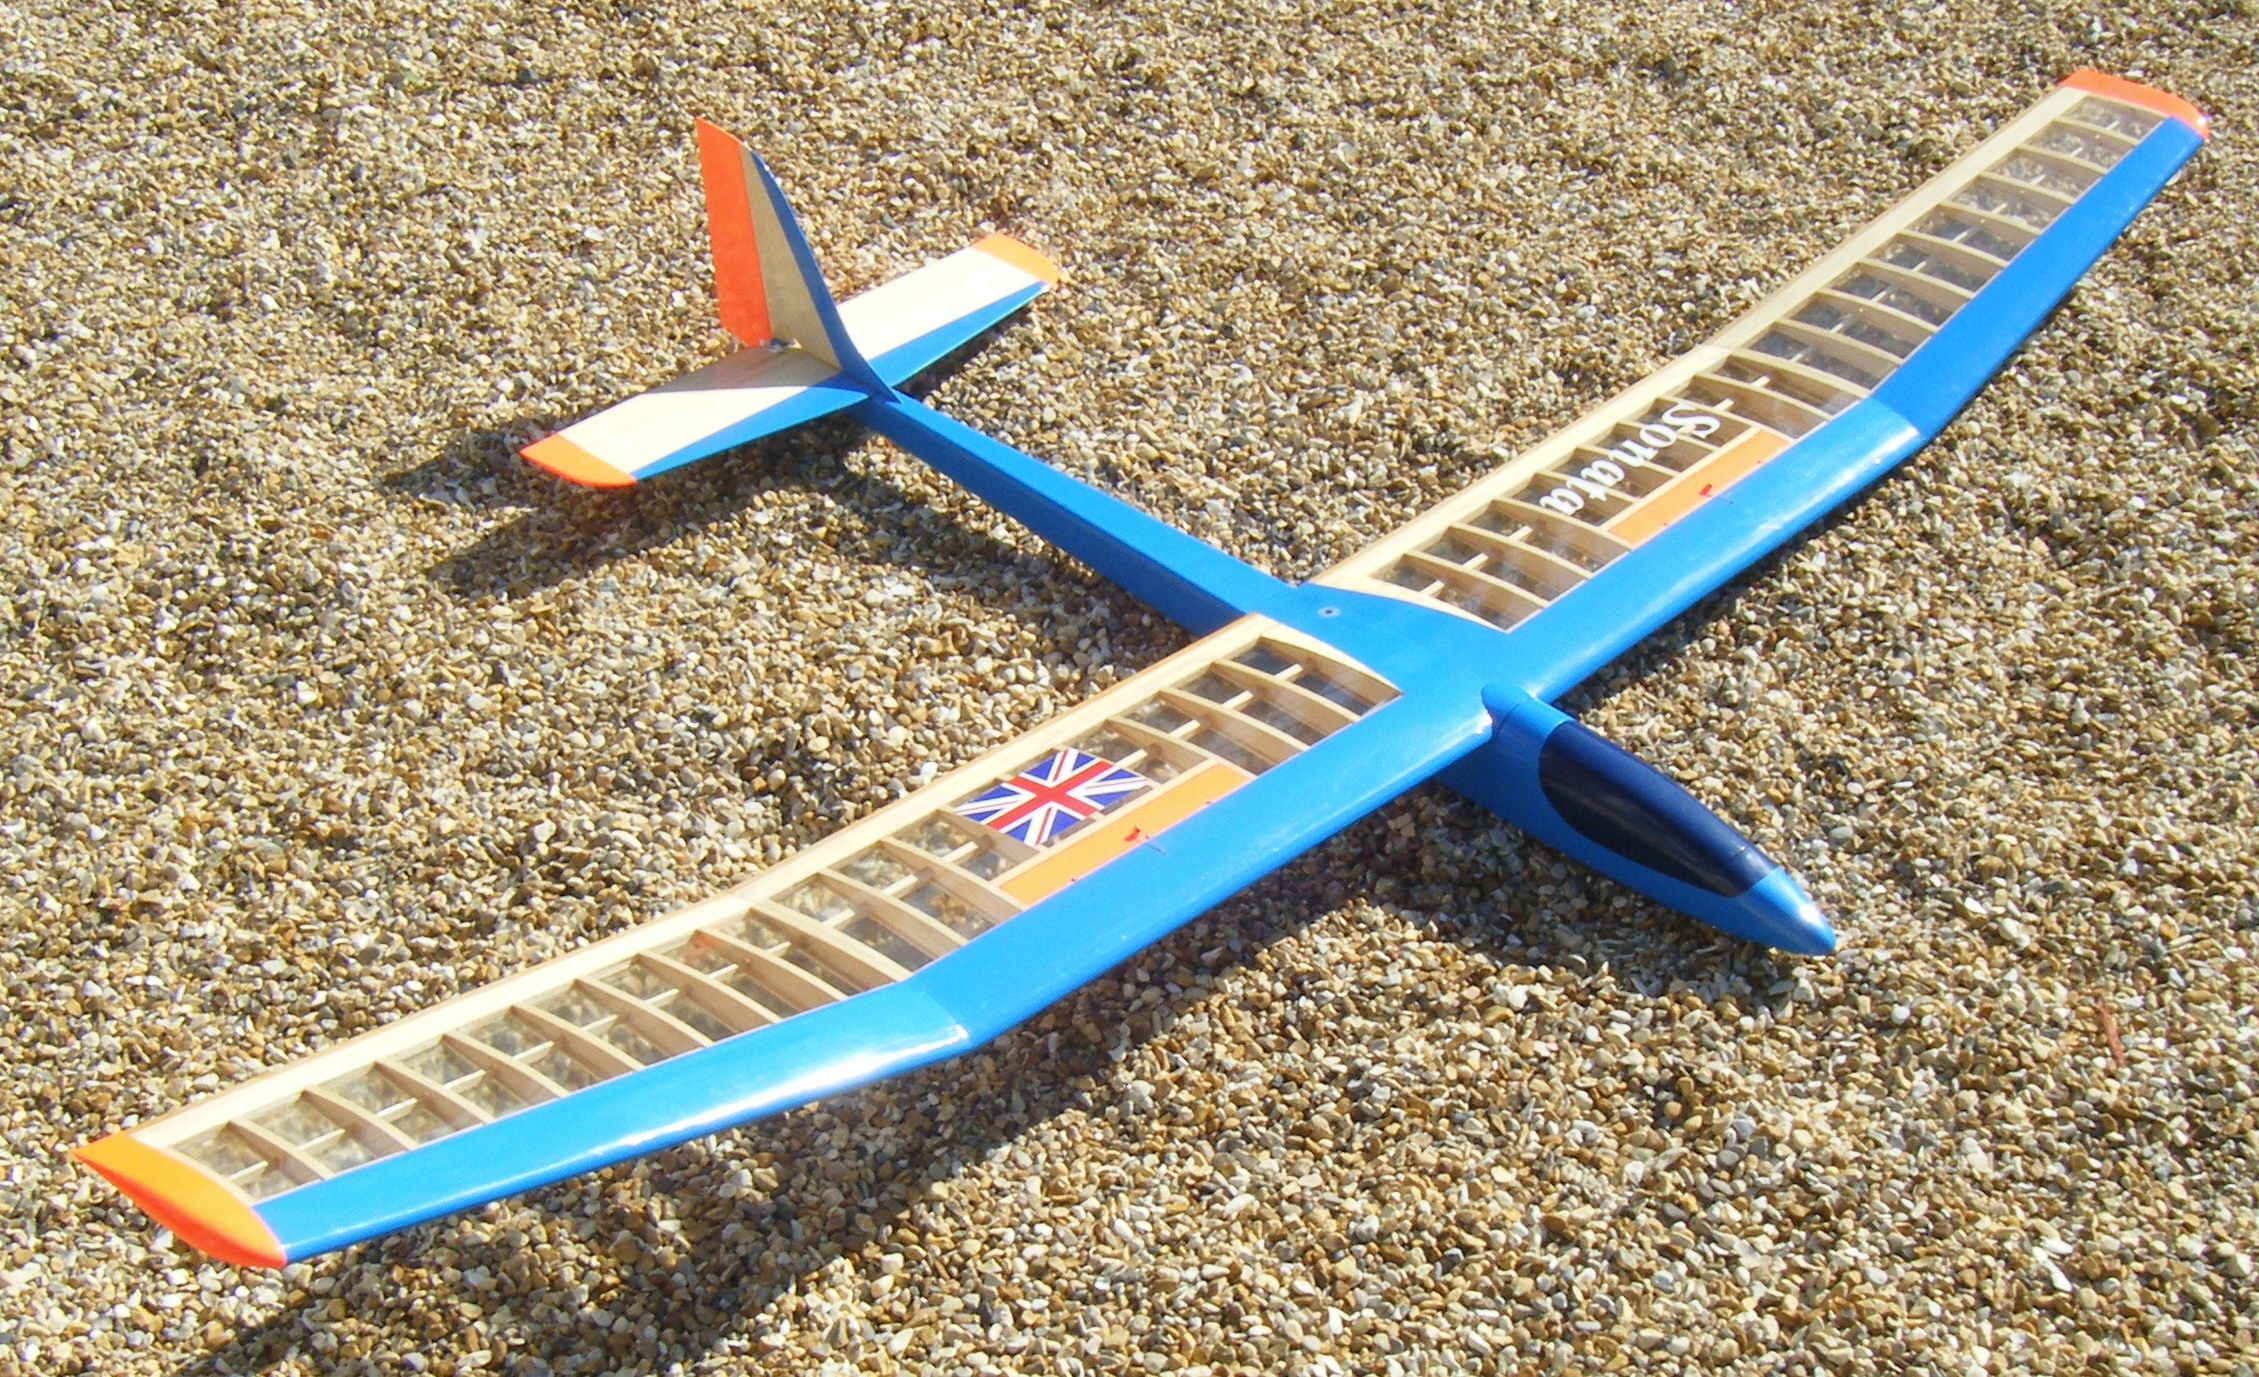 Vintage Model Gliders Sailplanes Plans | Model flight